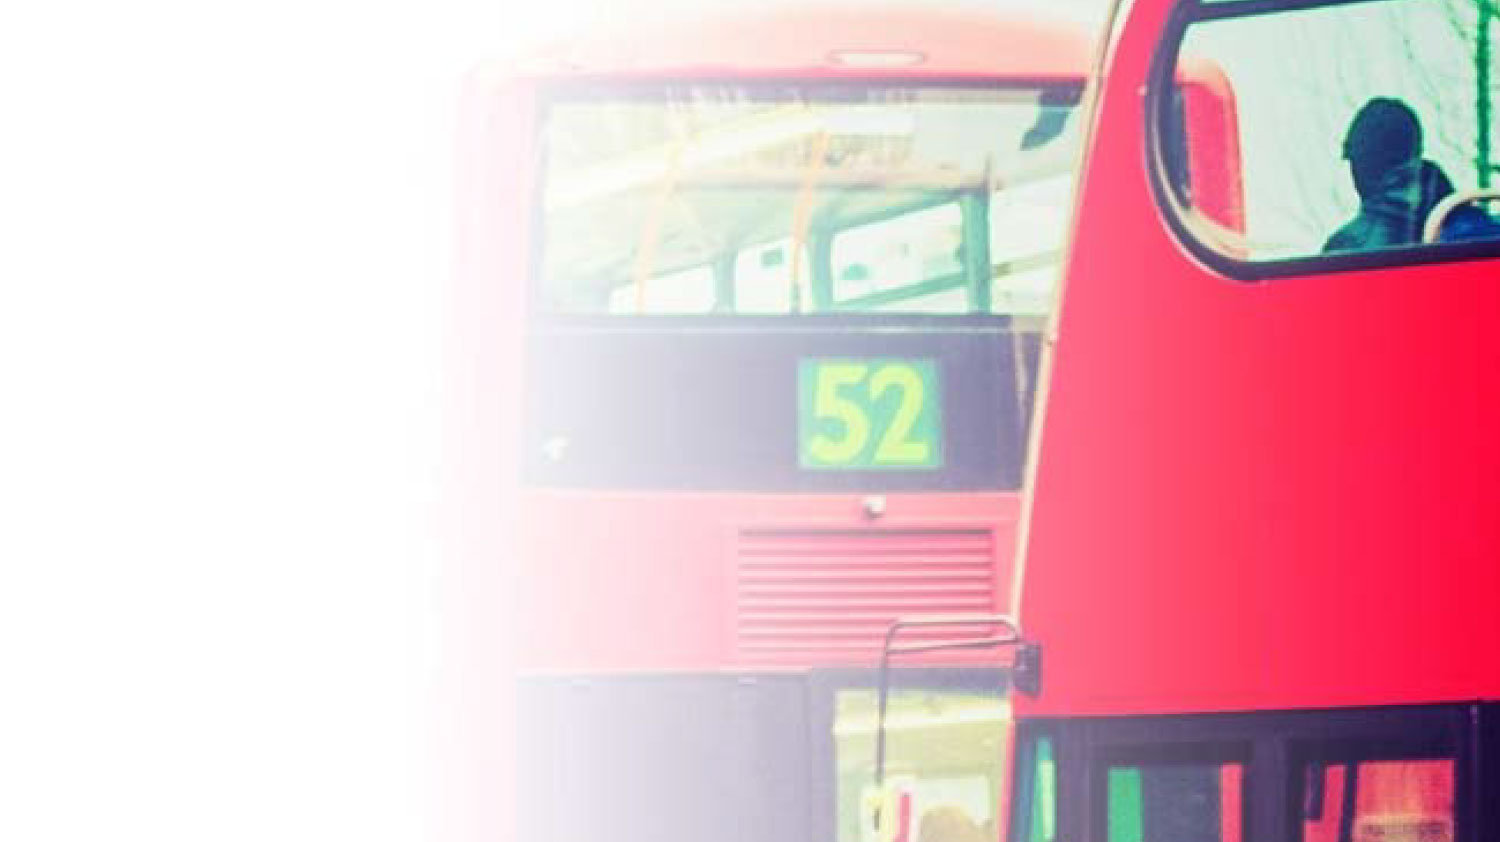 A study of the value of local bus services to society